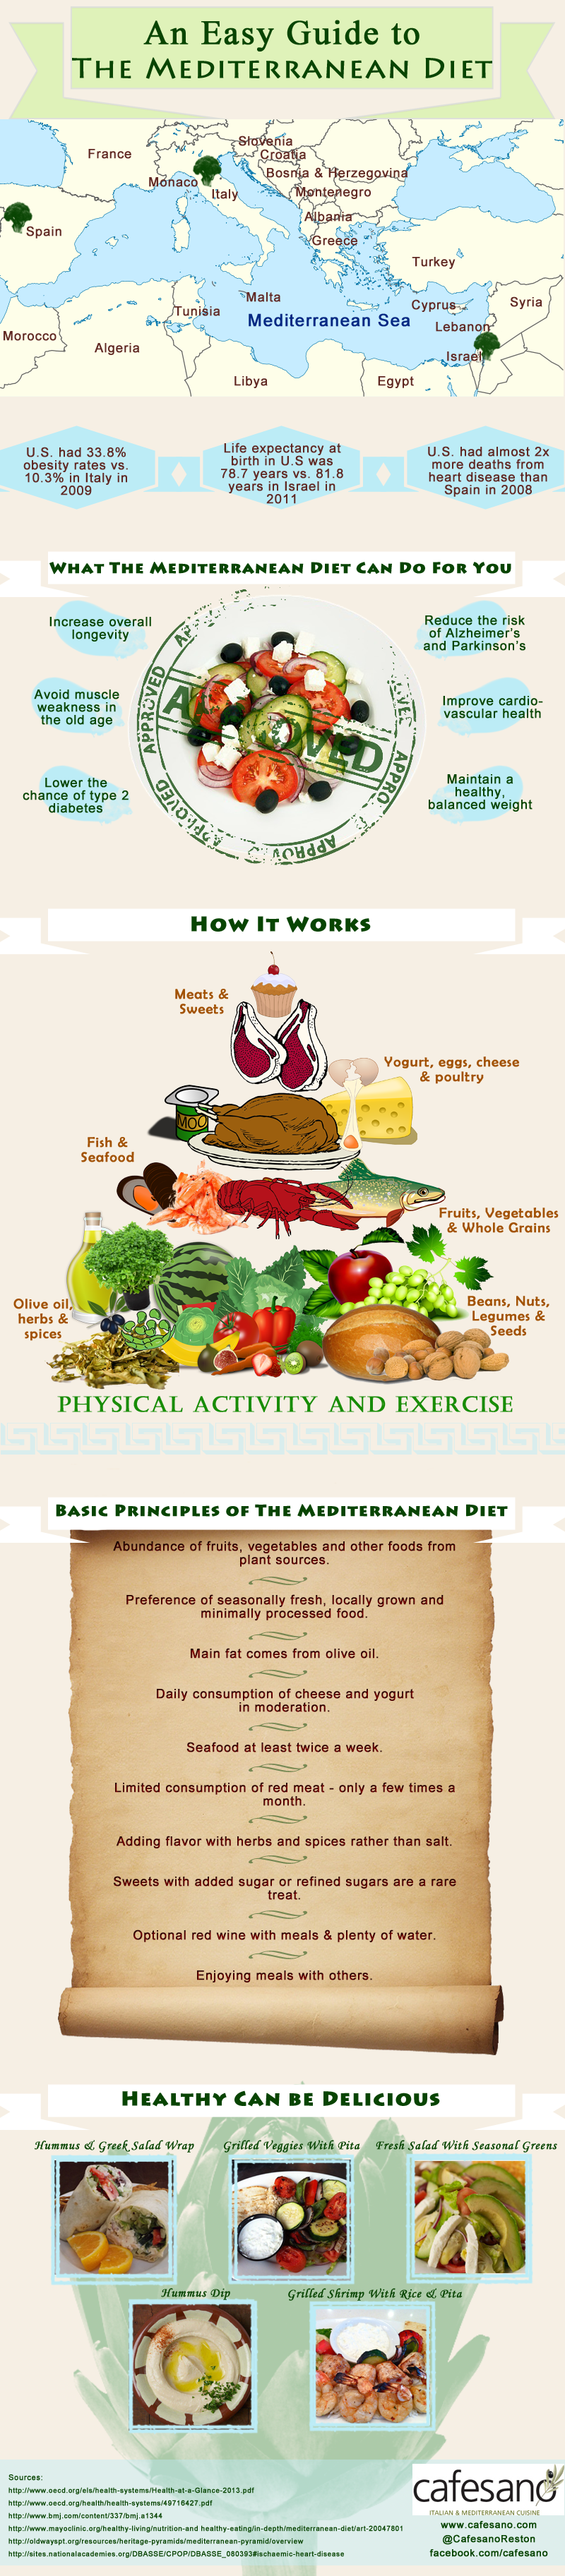 Infographic: An Easy Guide to the Mediterranean Diet #infographic